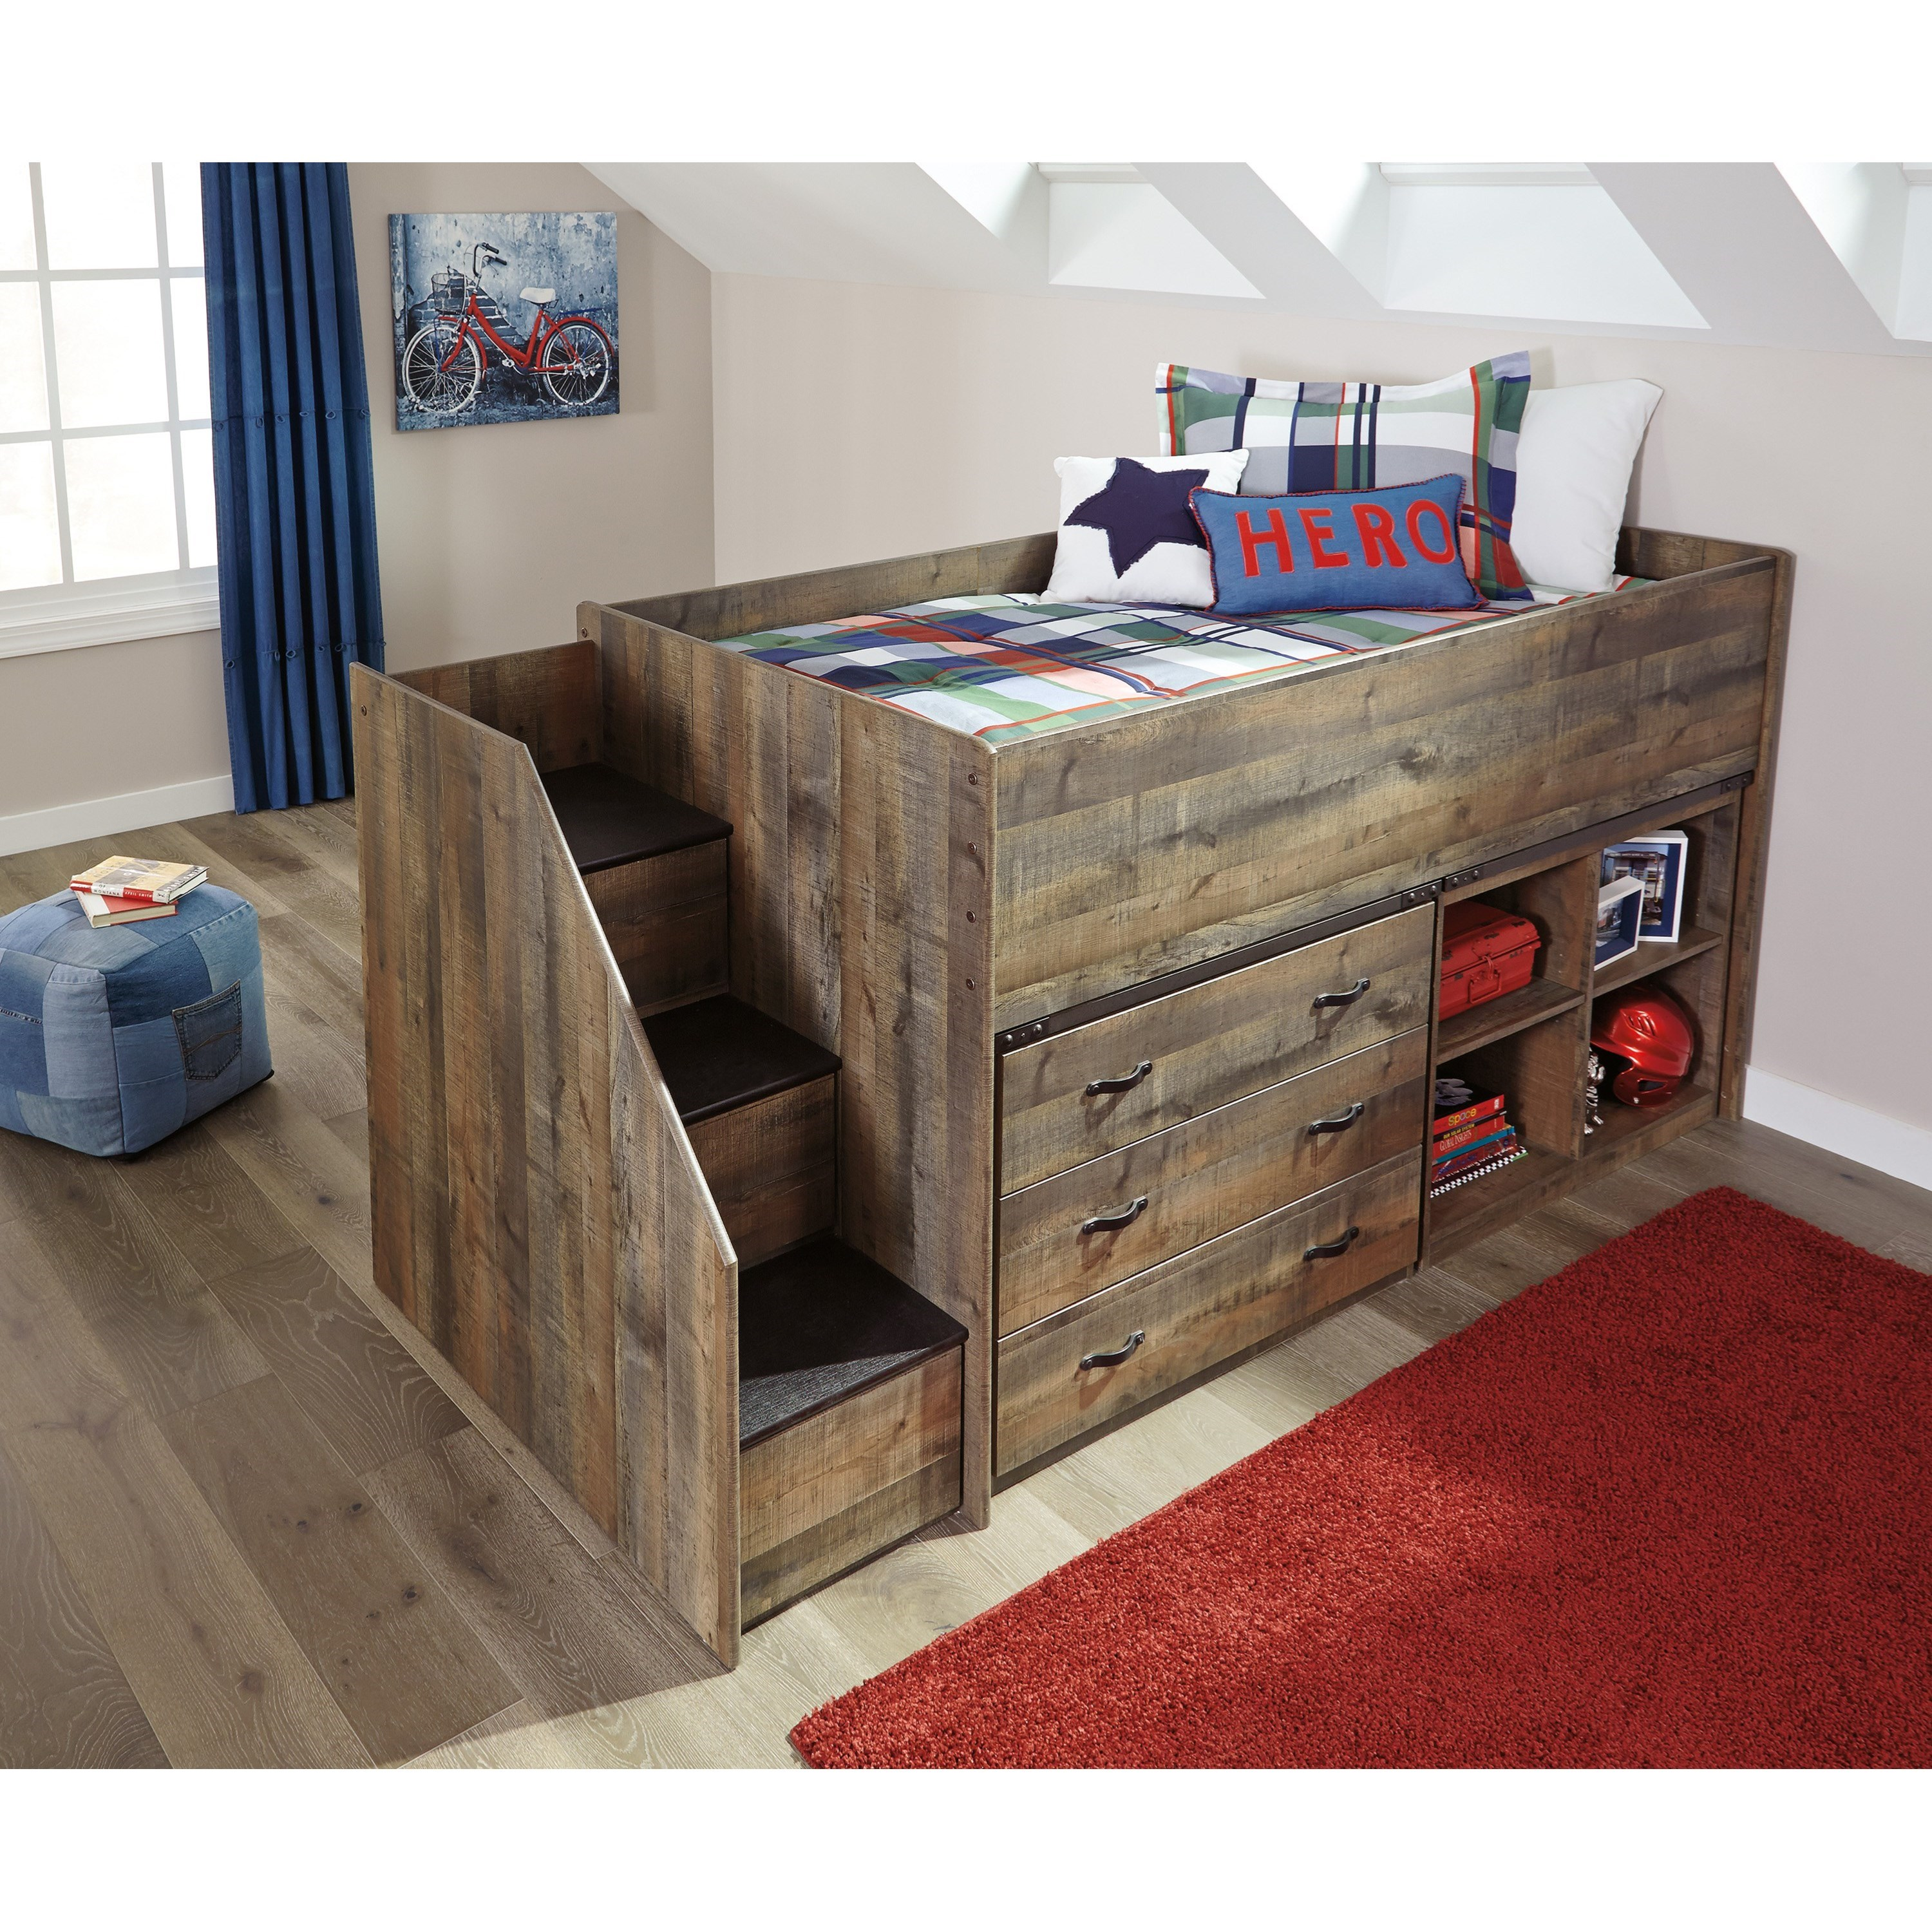 Signature design by ashley bryce loft bed w stairs bookcase drawer storage john v schultz - Loft bed with drawer stairs ...